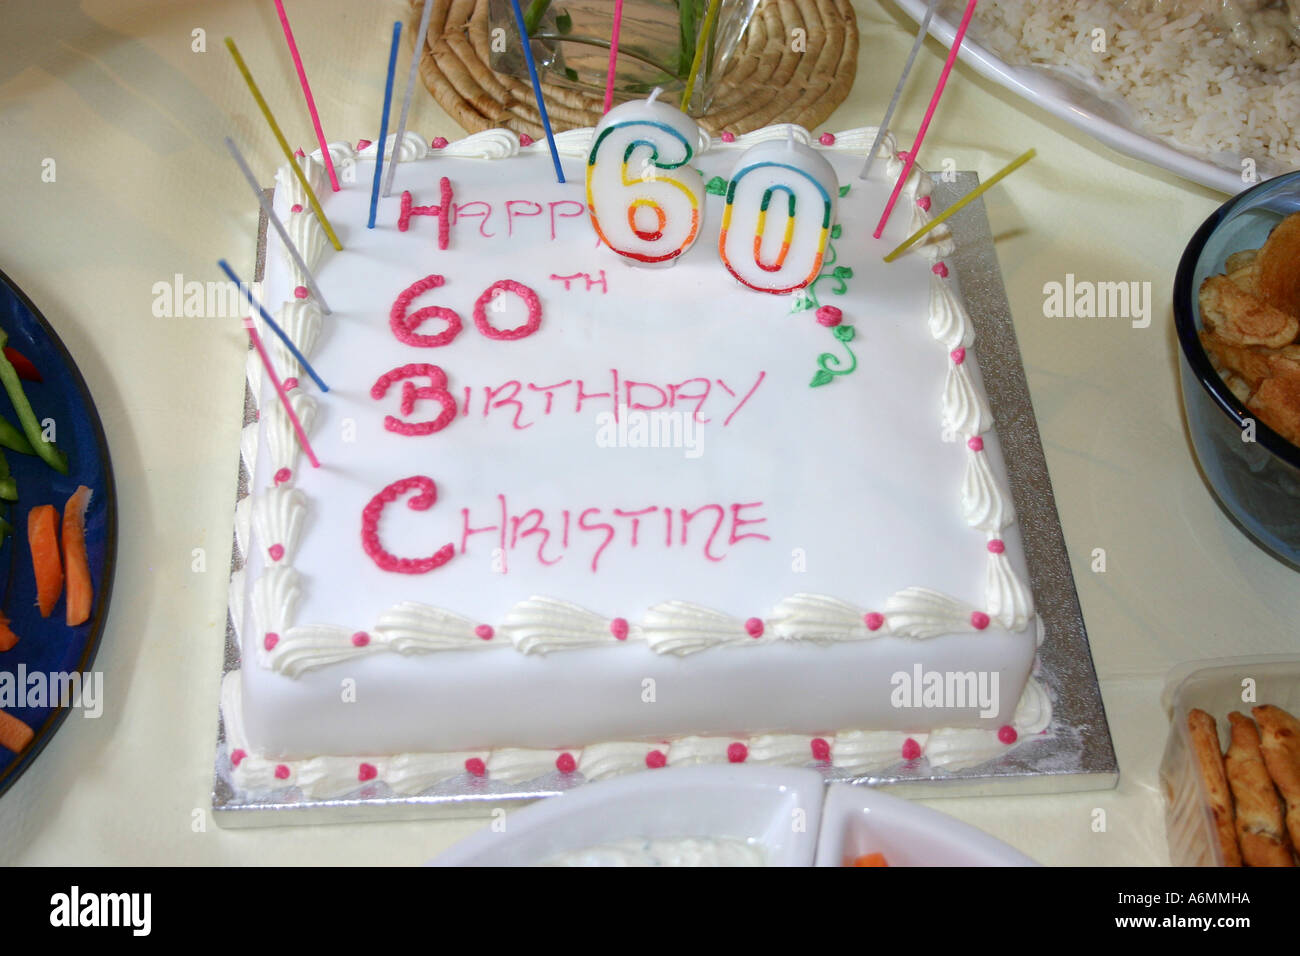 60th Birthday Cake Stock Photos Images